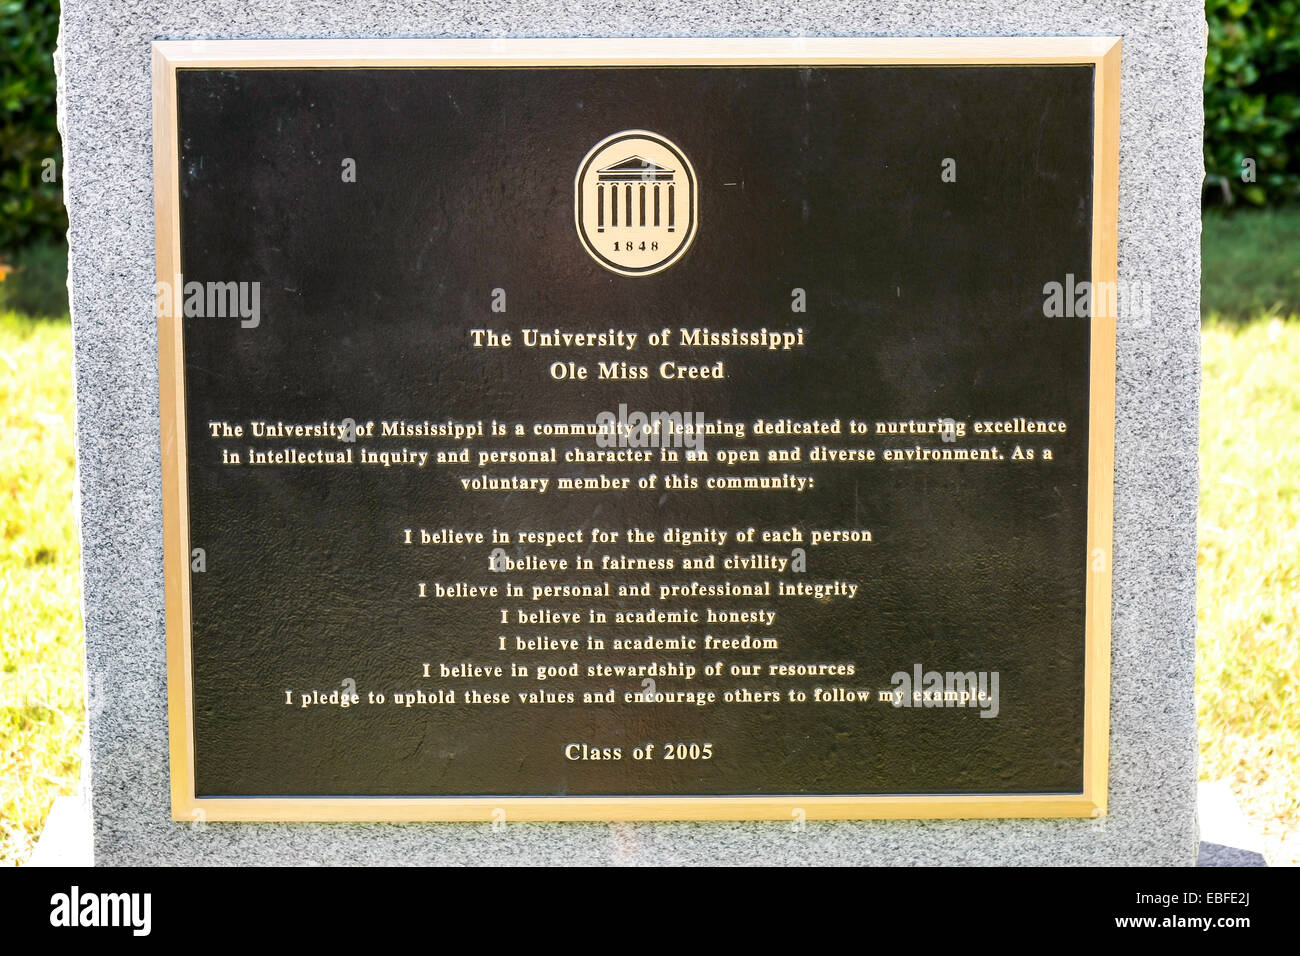 The University of Mississippi 'Ole Miss' creed plaque outside the Lyceum building at Oxford. - Stock Image